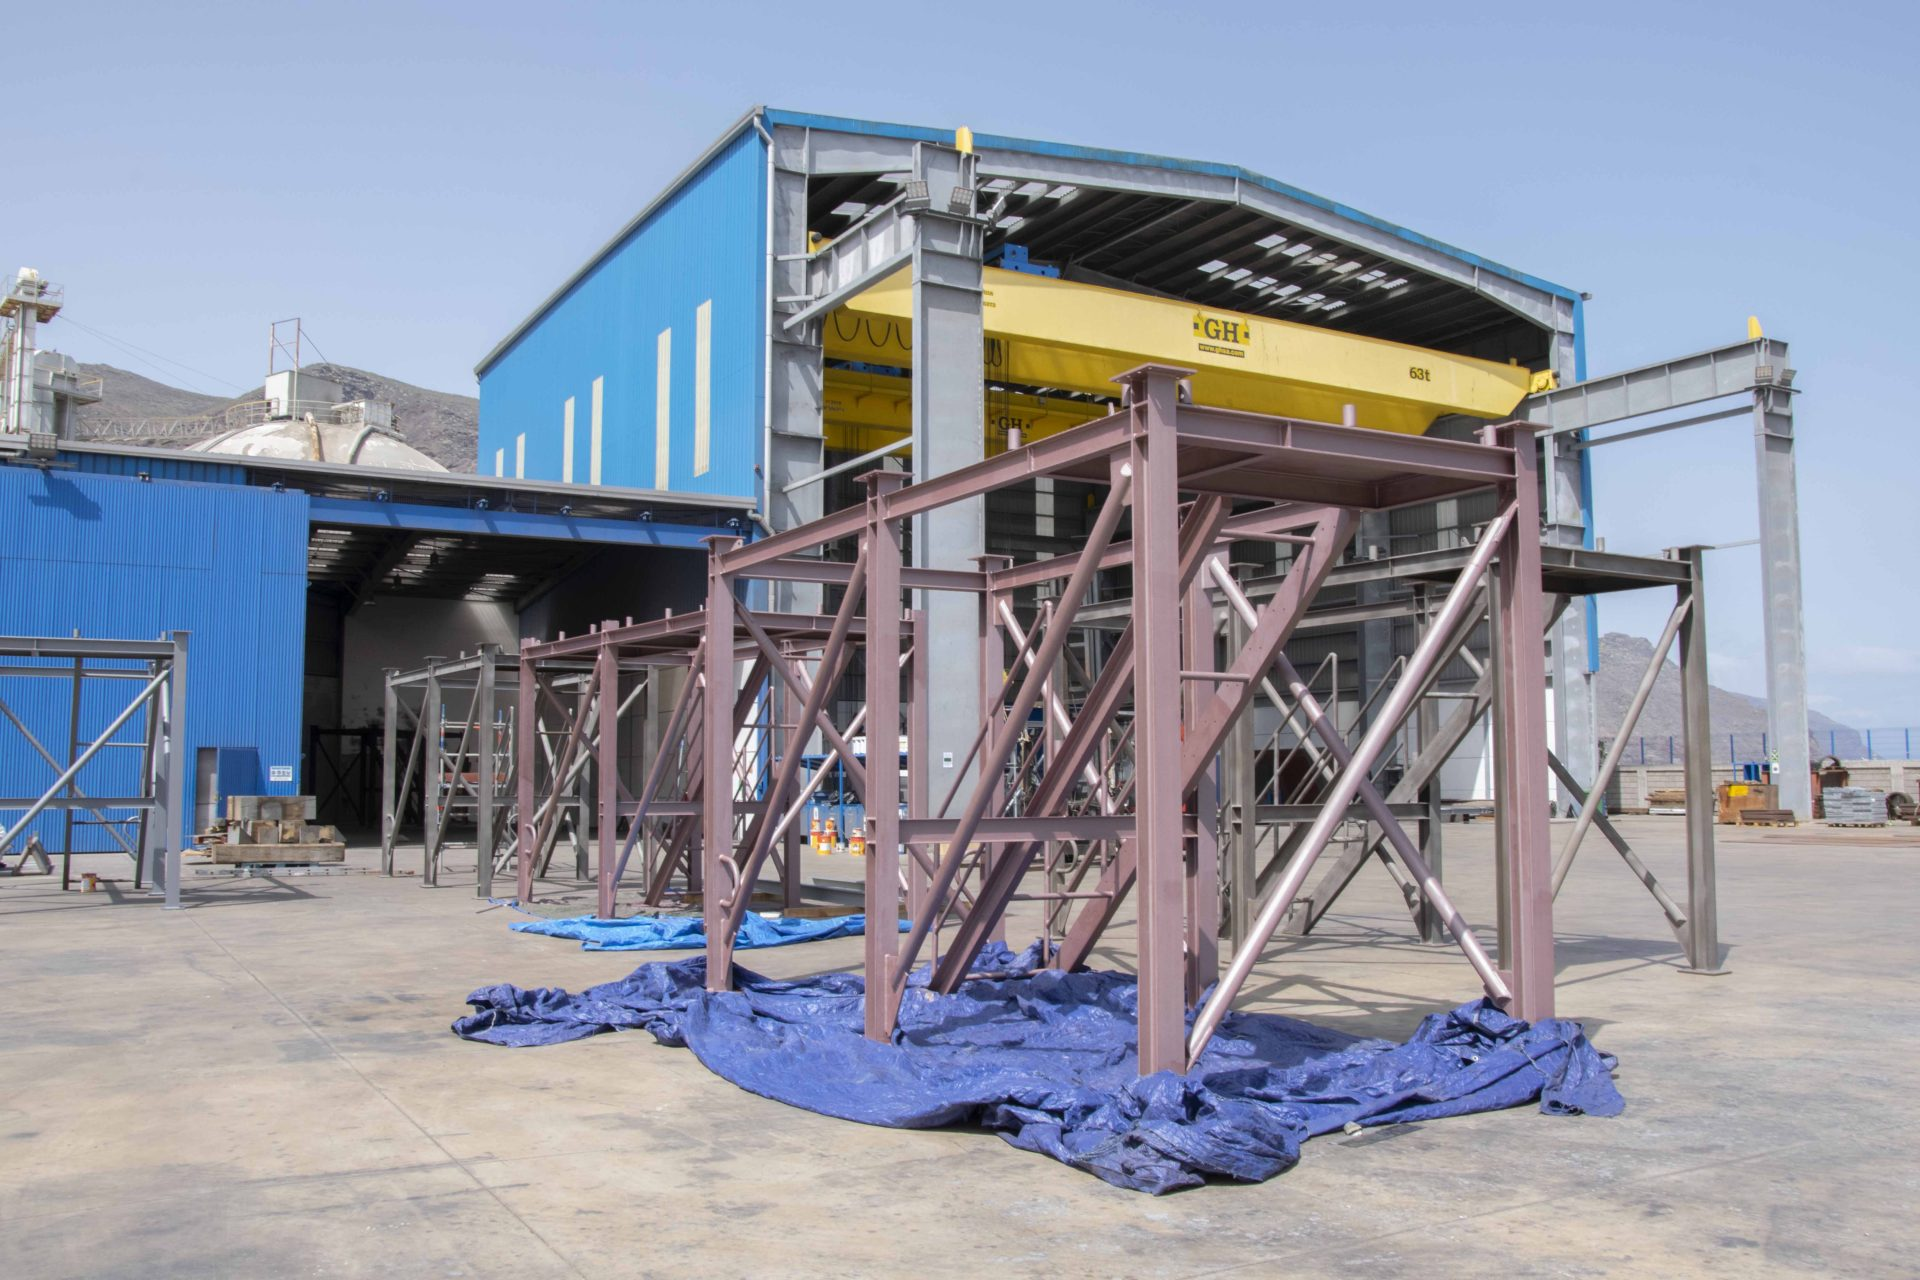 Tenerife Shipyards modules fabrication and assembly